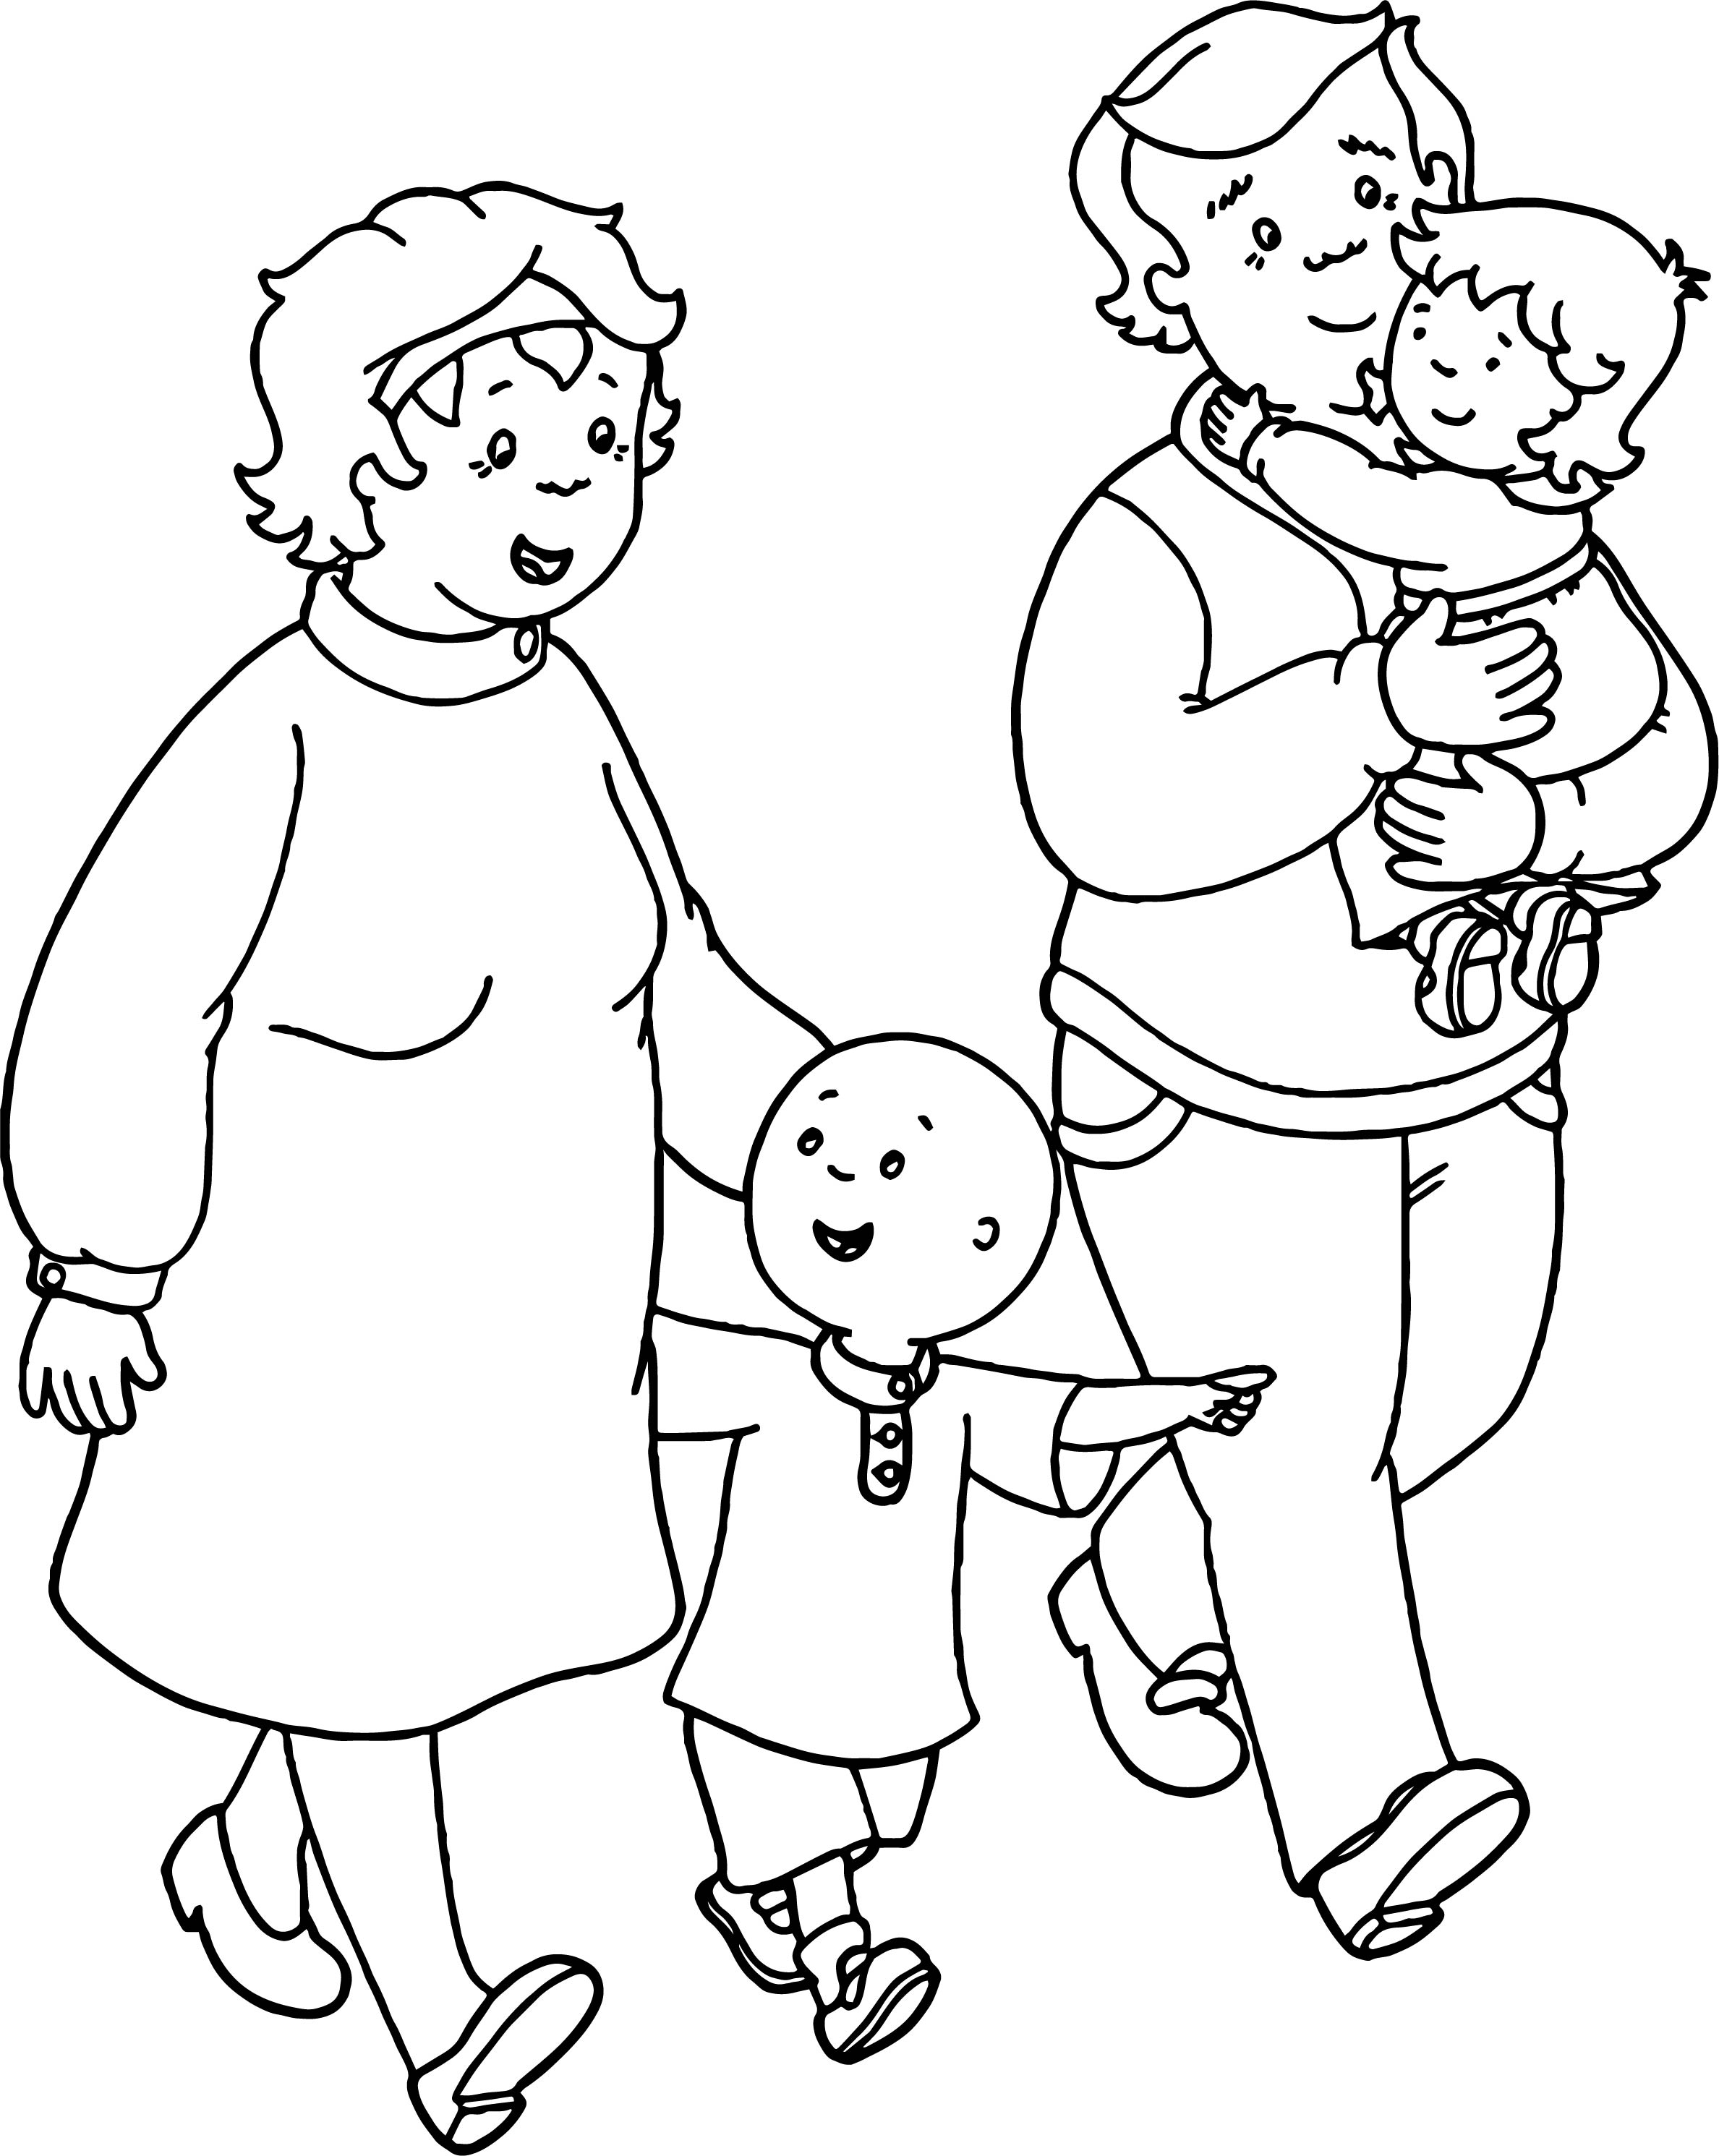 coloring pages of families - caillou family coloring page